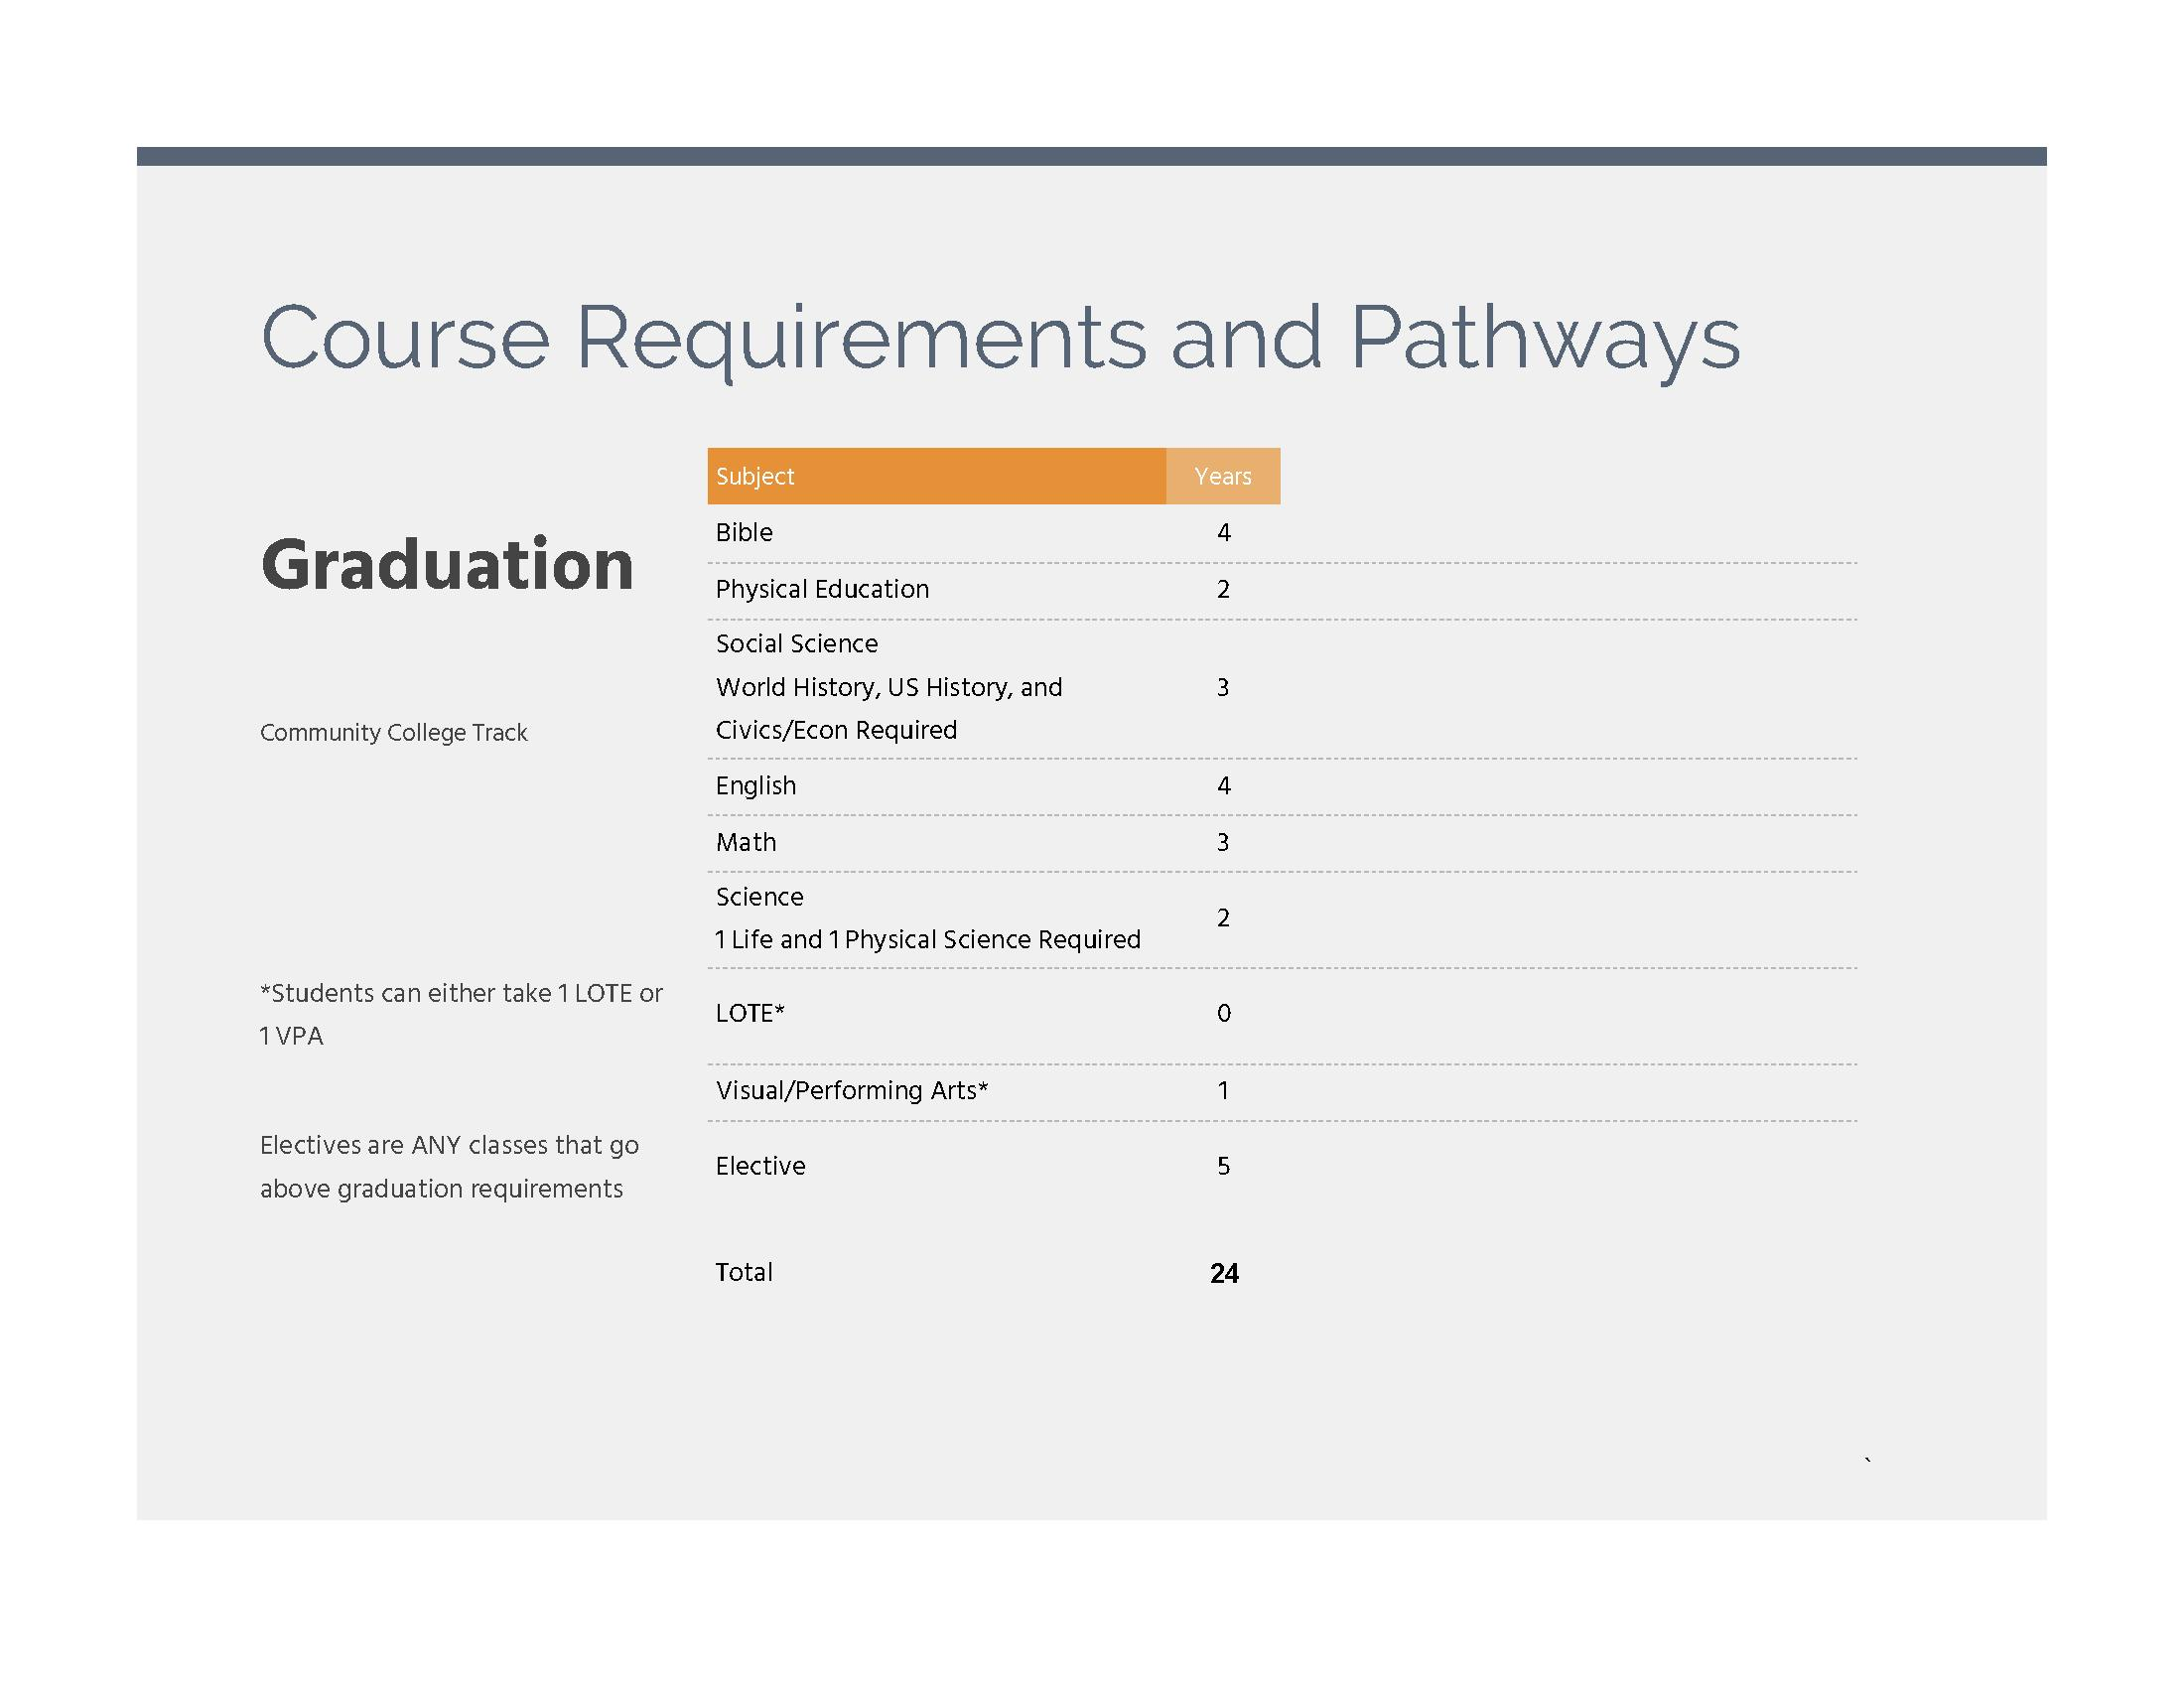 Course Requirements and Pathways image 1